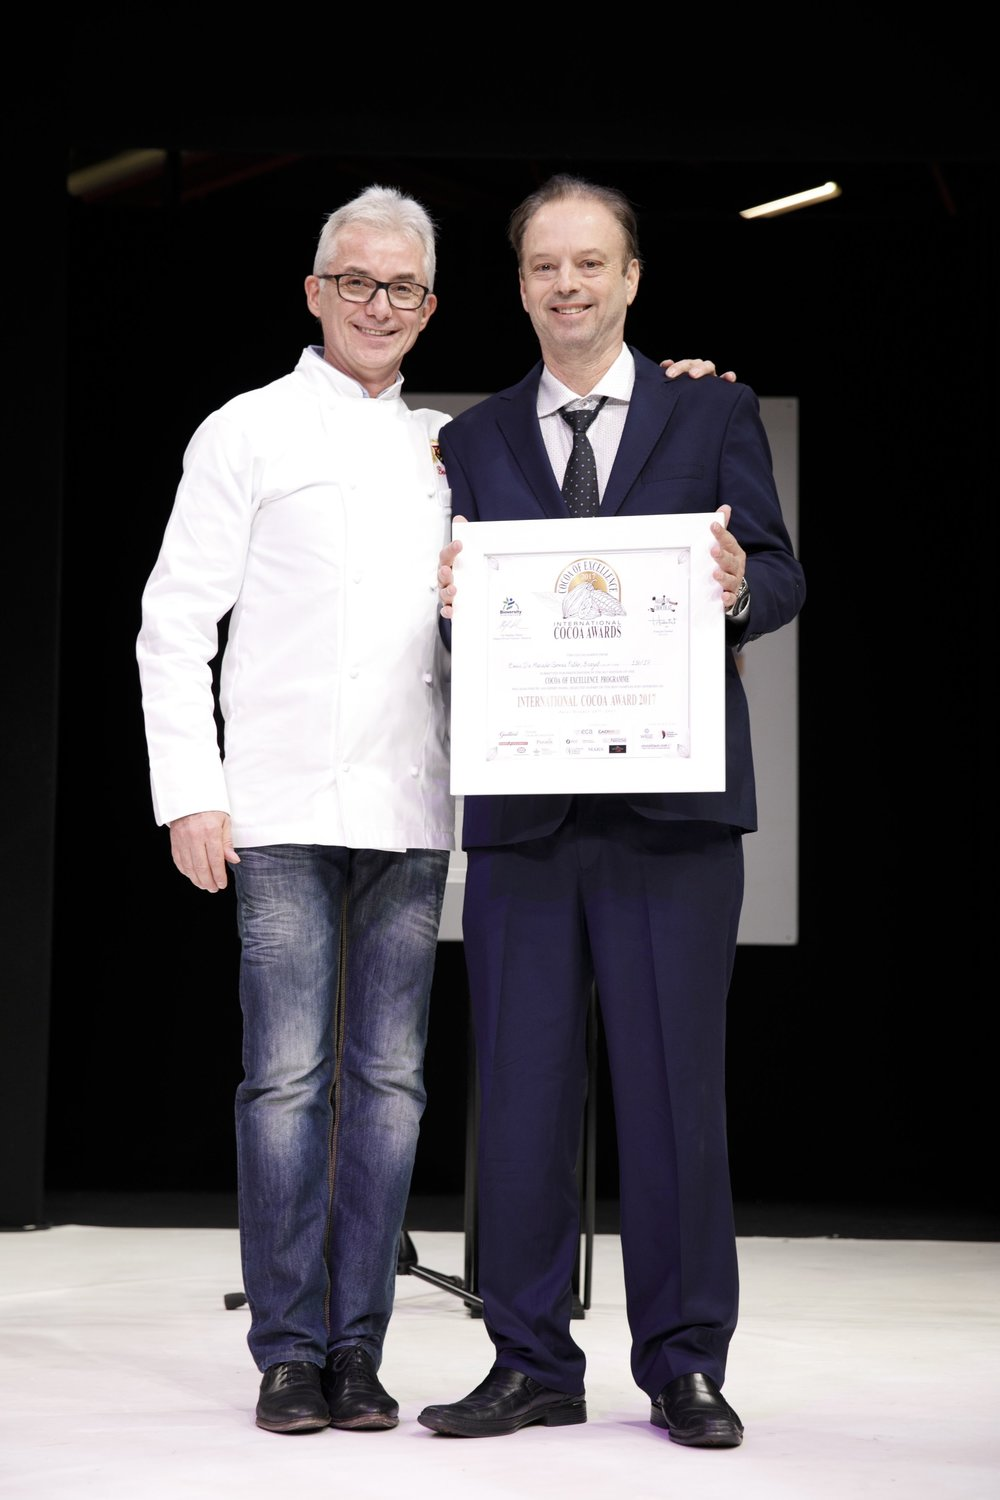 ICA Winner, South America: BRAZIL - Emir de Macedo Gomes Filho, Linhares received the Award from French Chocolatier Stephane Bonnat